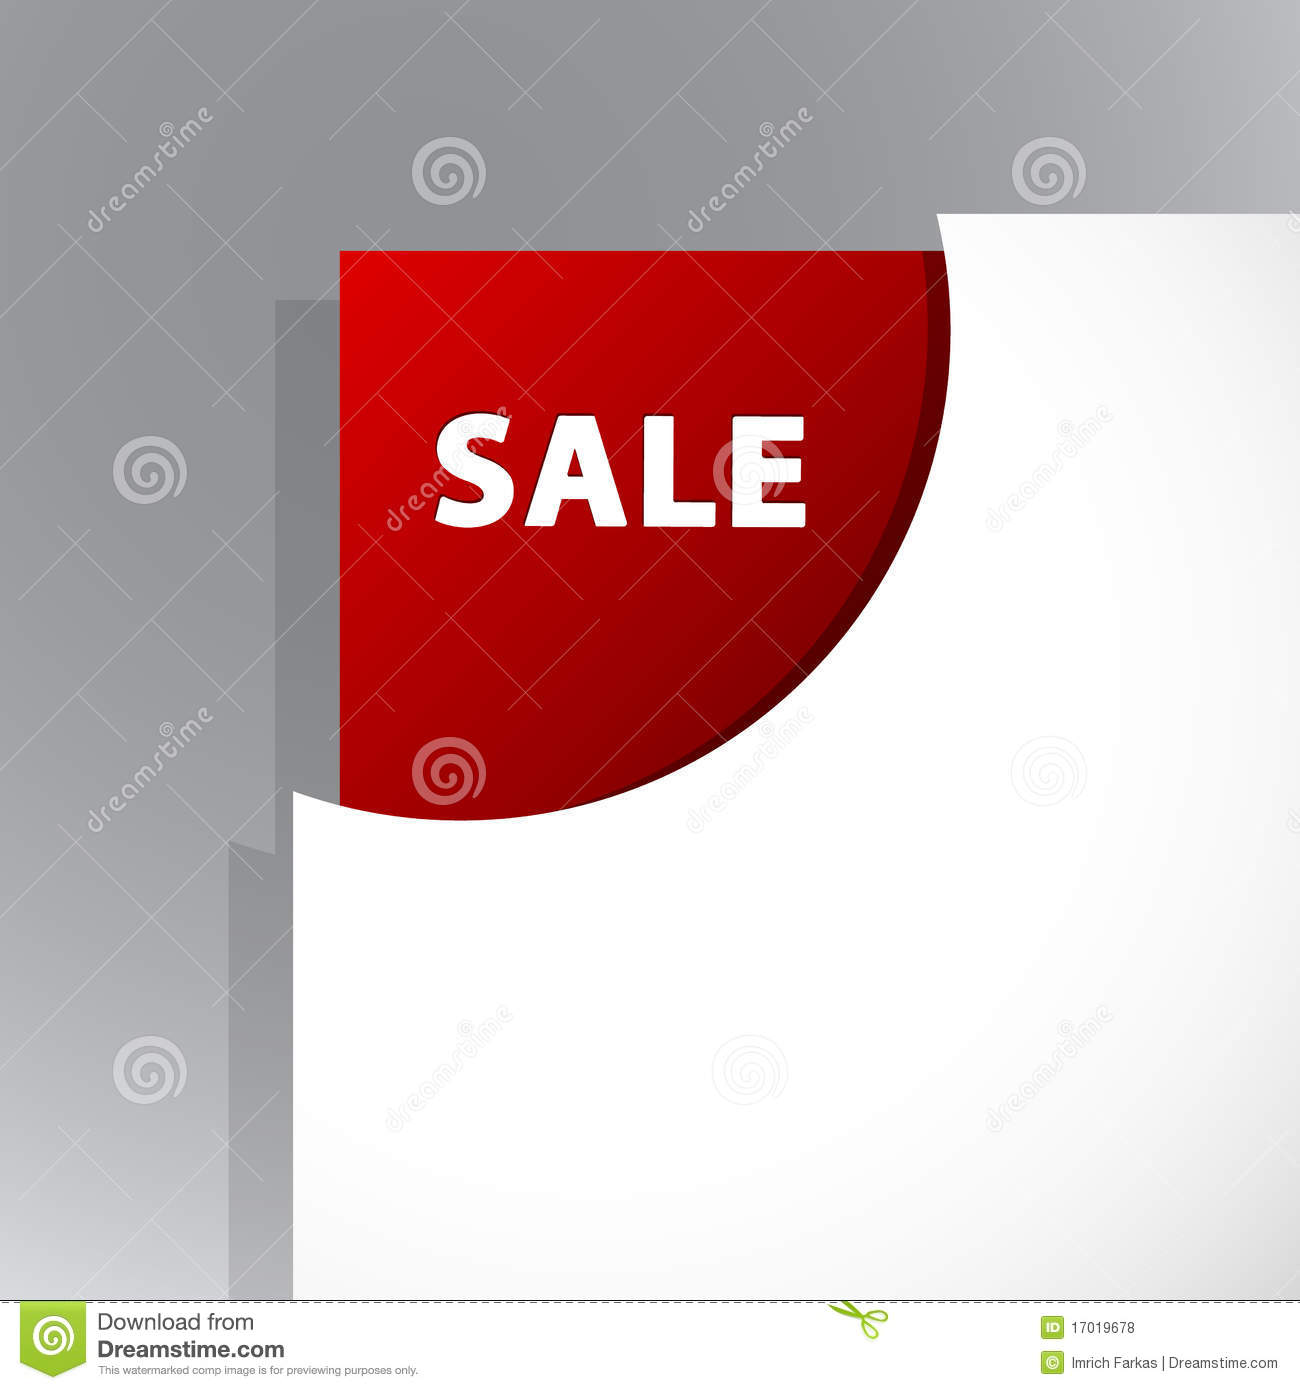 Admissions papers for sale daily